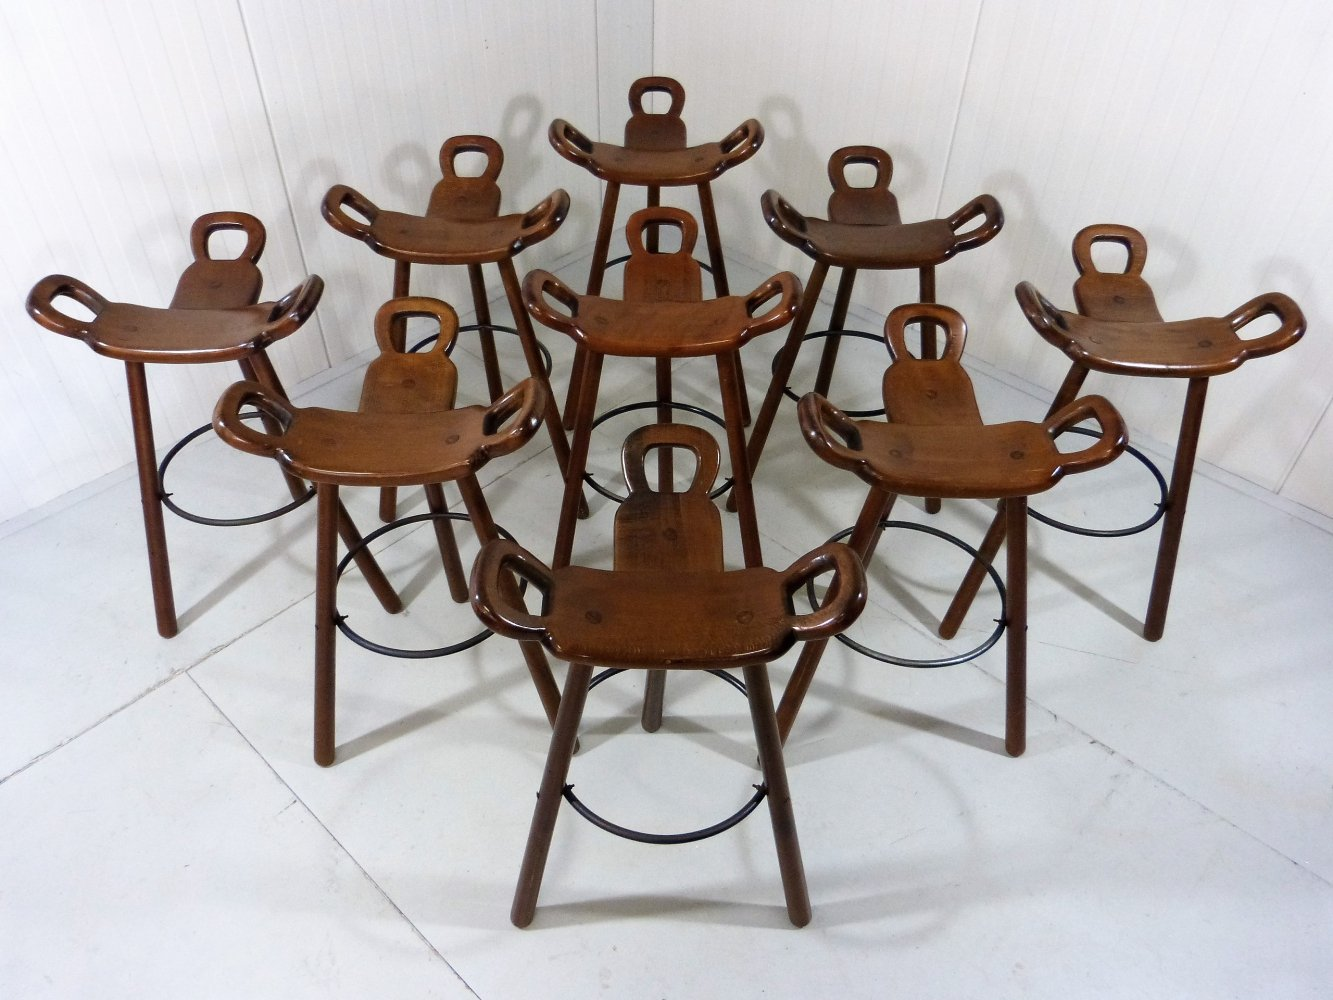 Set of 9 Marbella barstools by Confonorm, 1970